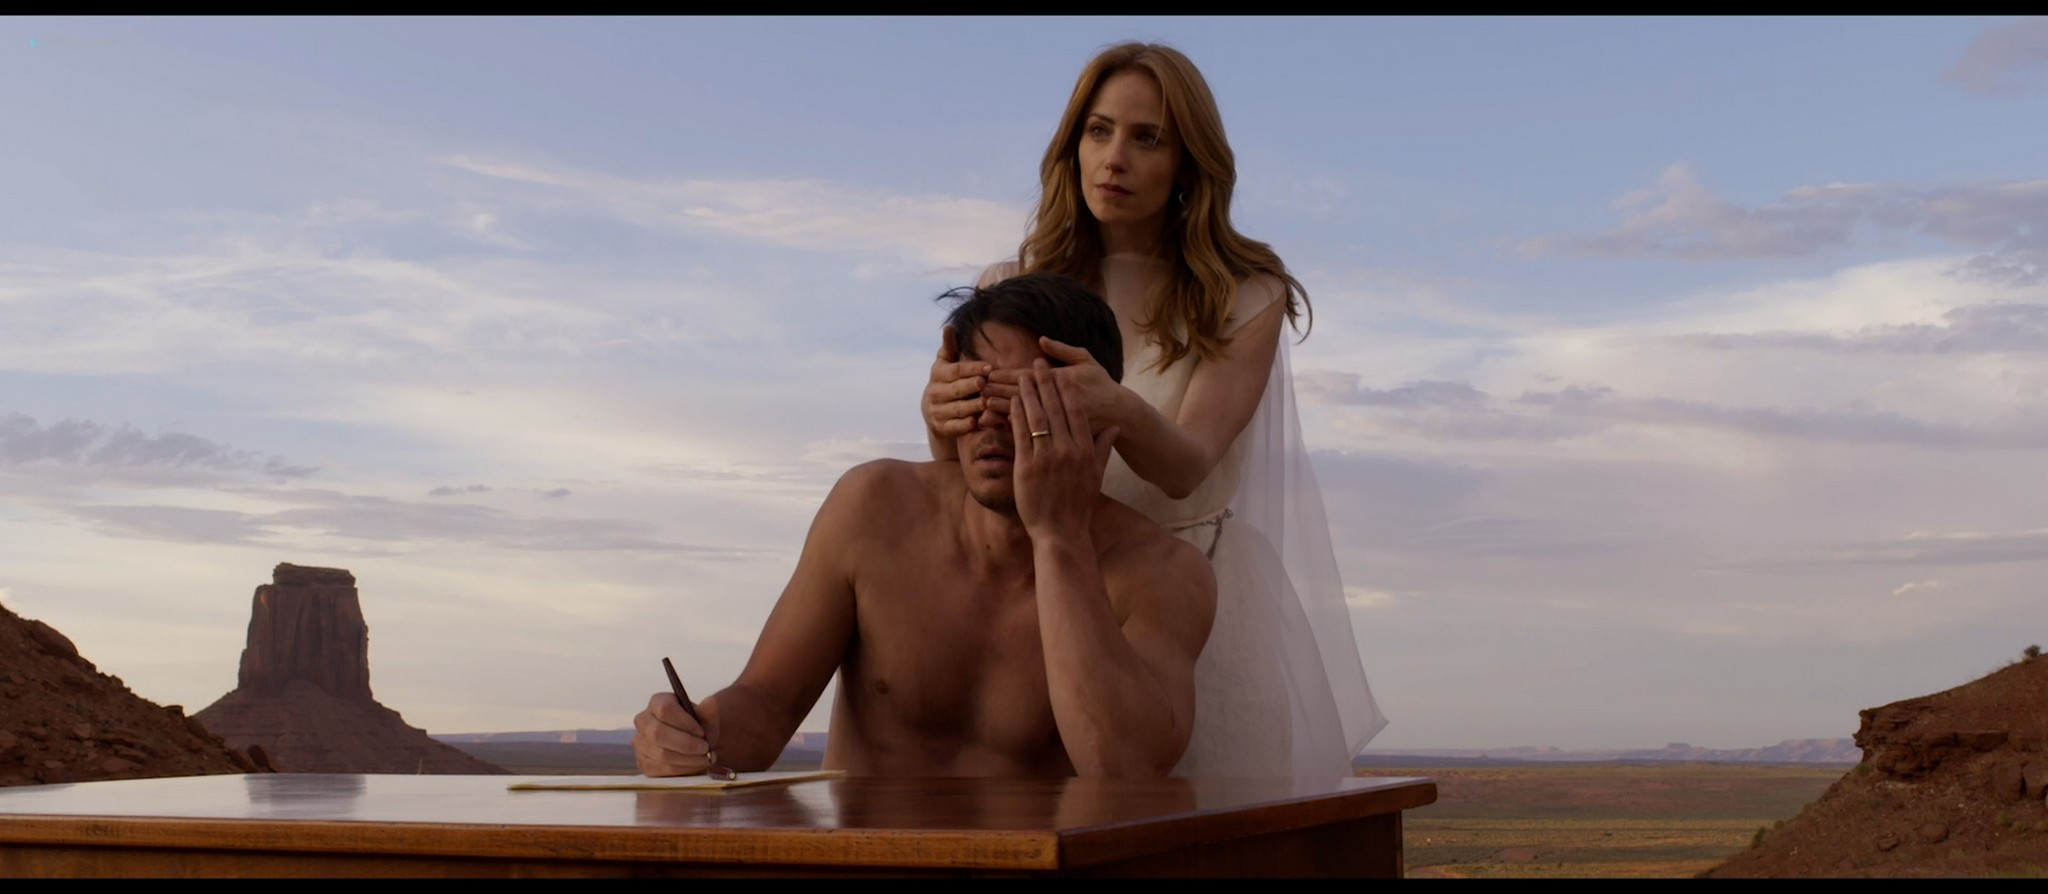 Bérénice Marlohe nude Jaime Ray Newman sexy Owee Rae butt naked - Valley of the Gods (2019) HD 1080p BluRay (3)